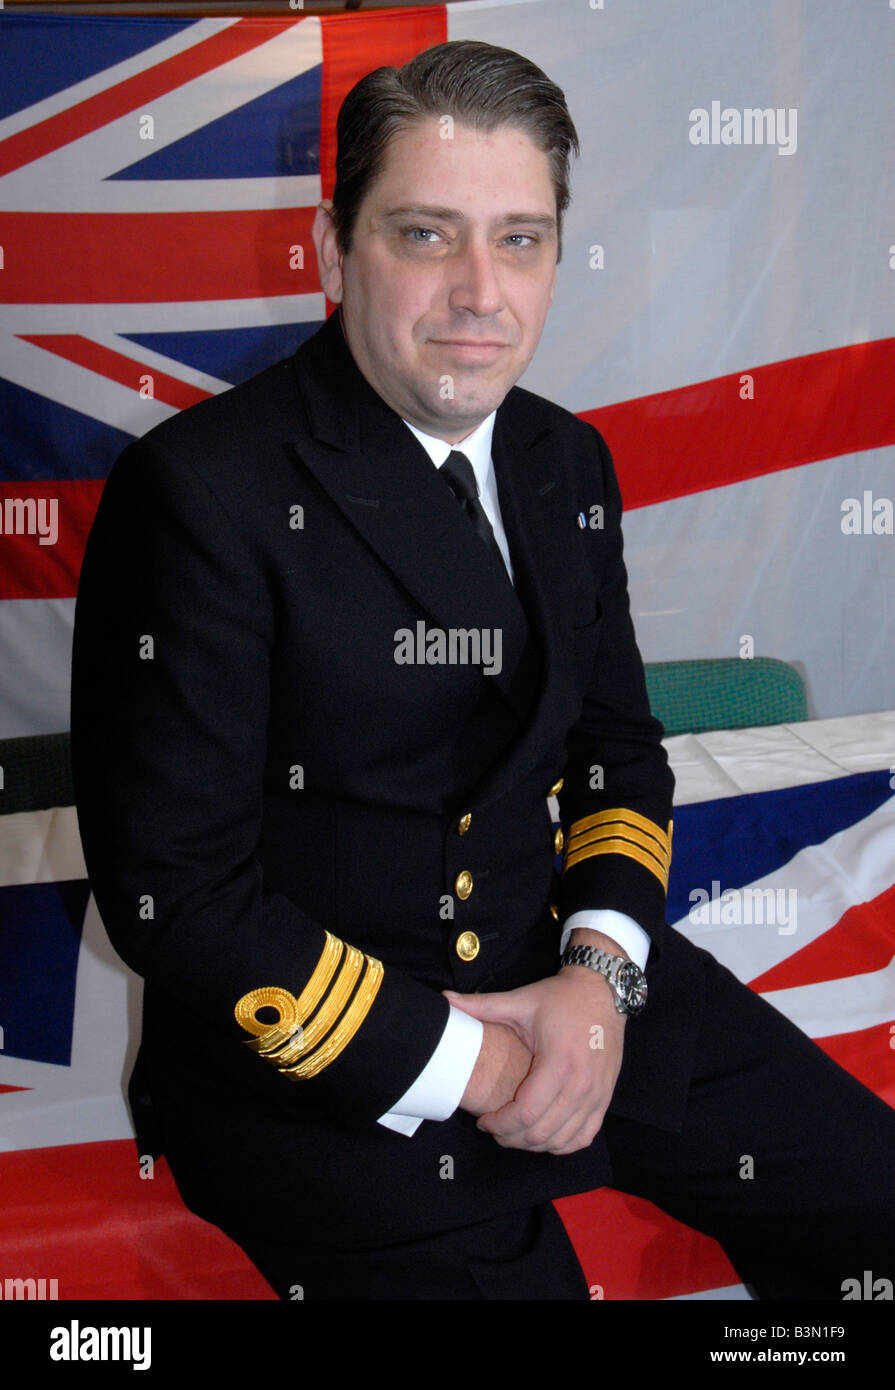 Captain of the ship Cdr Mike Utley Type 23 'Duke Class' Frigate 'HMS Portland' - Stock Image